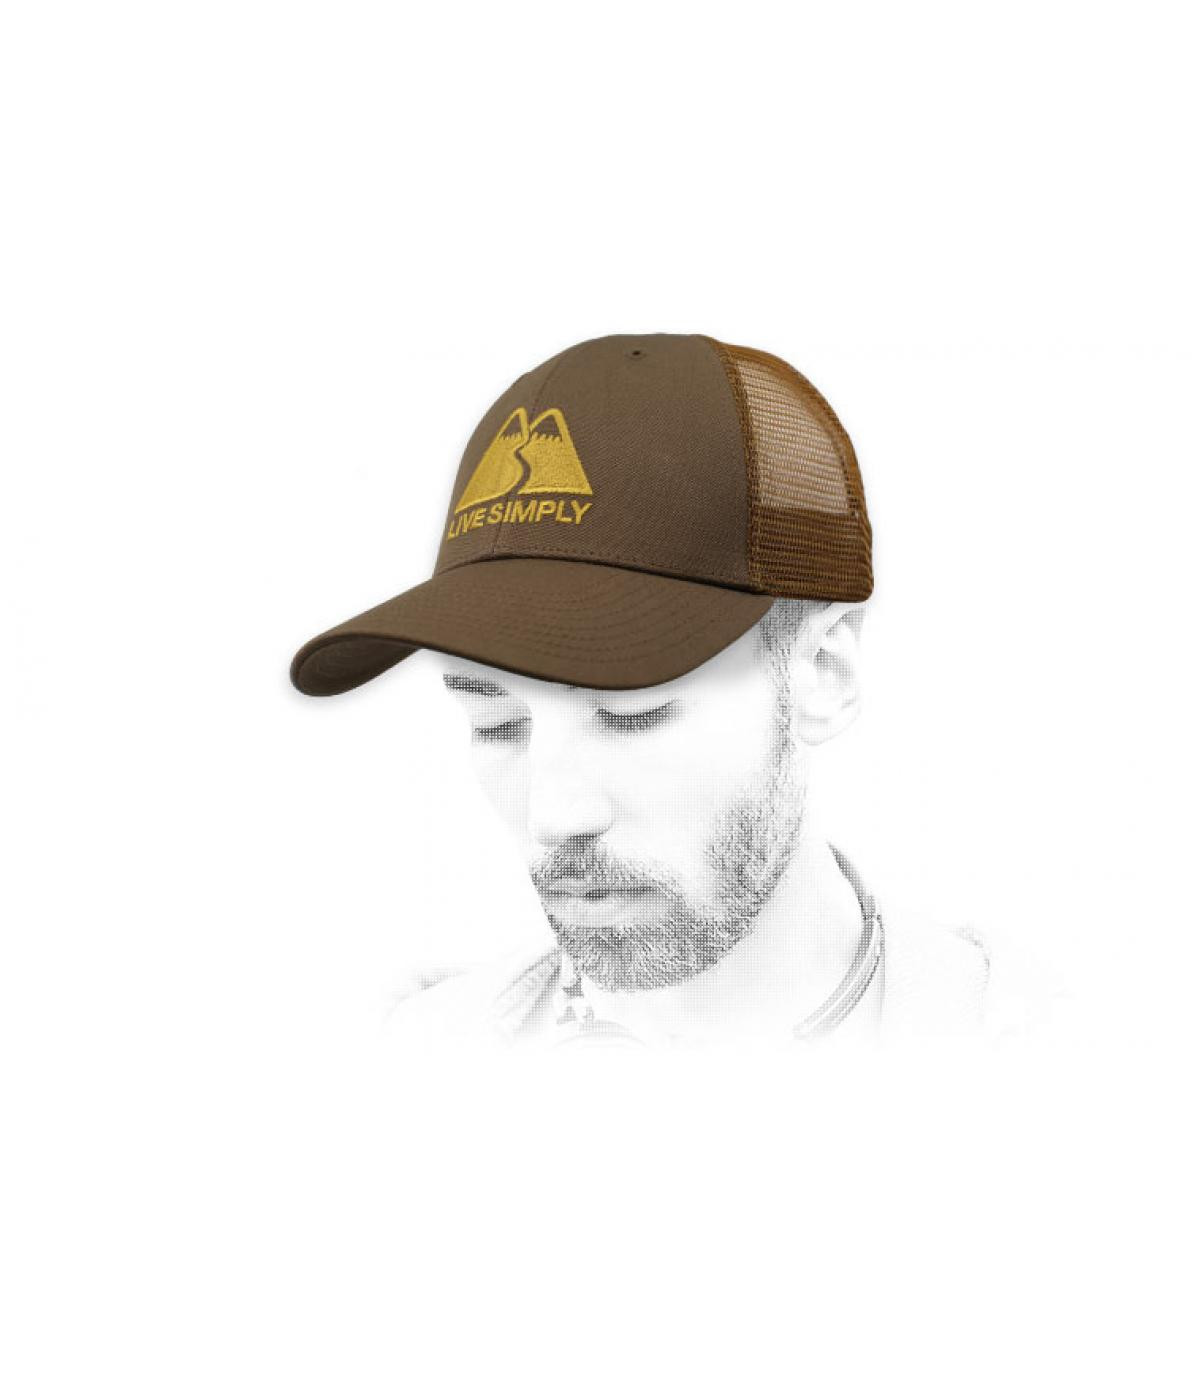 Live Simply trucker brown